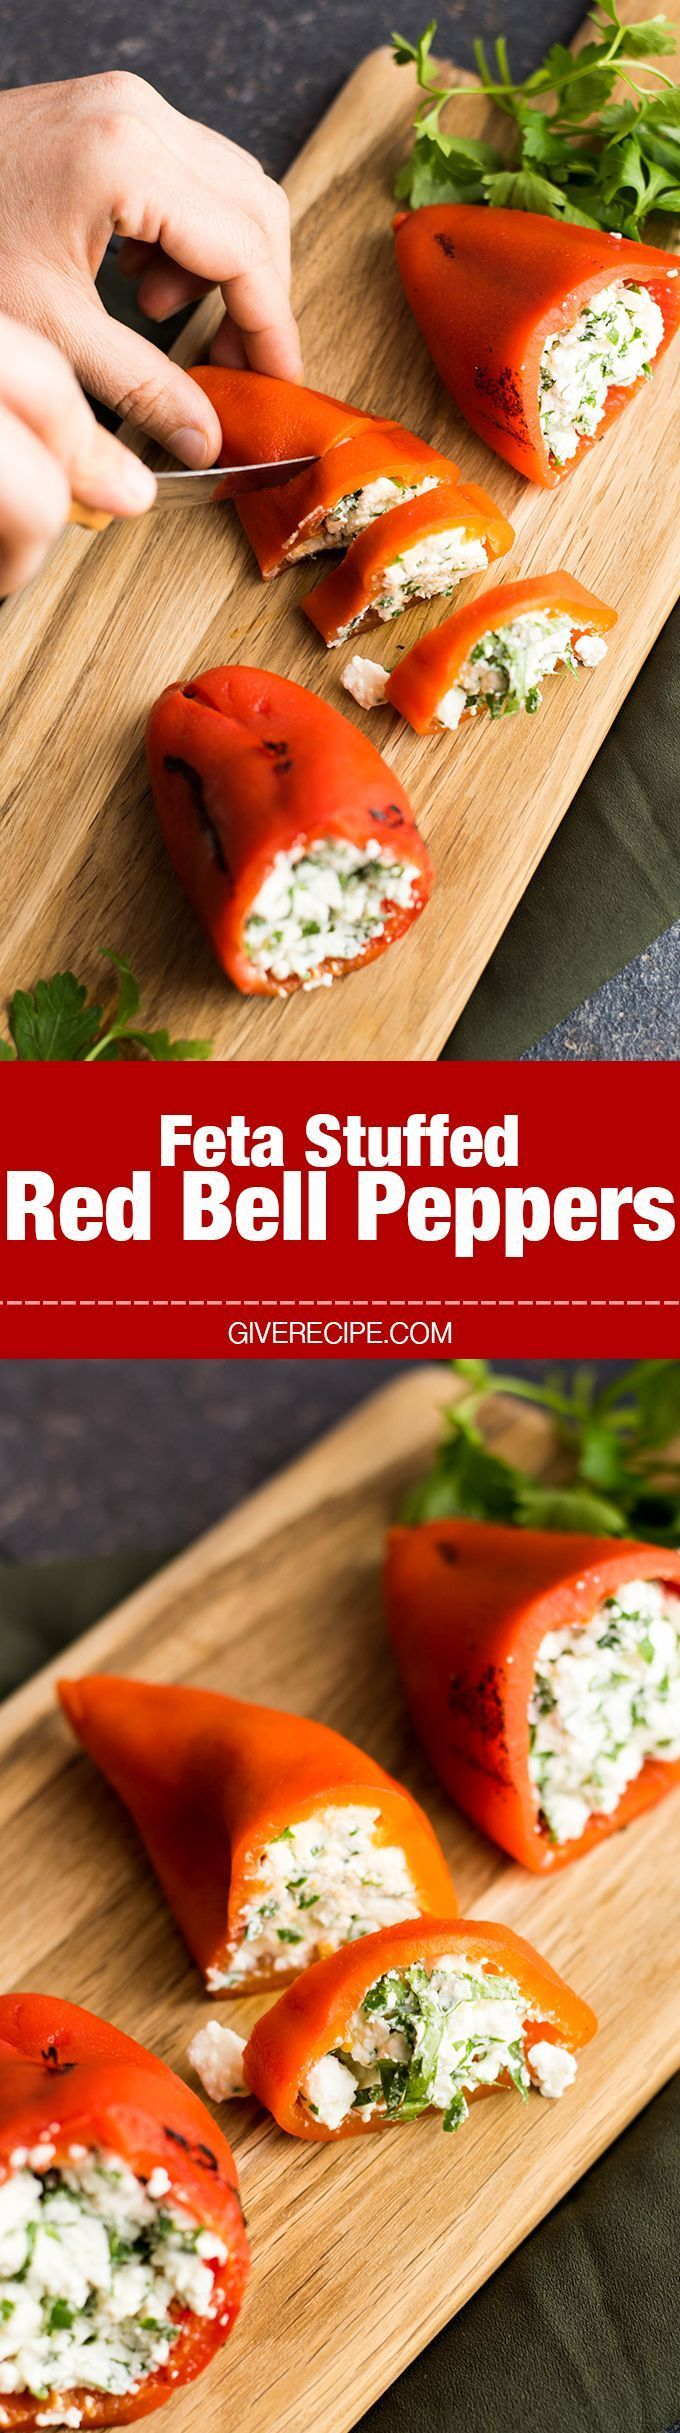 Feta Stuffed Red Bell Peppers Give Recipe Recipe Stuffed Peppers Diy Food Recipes Food